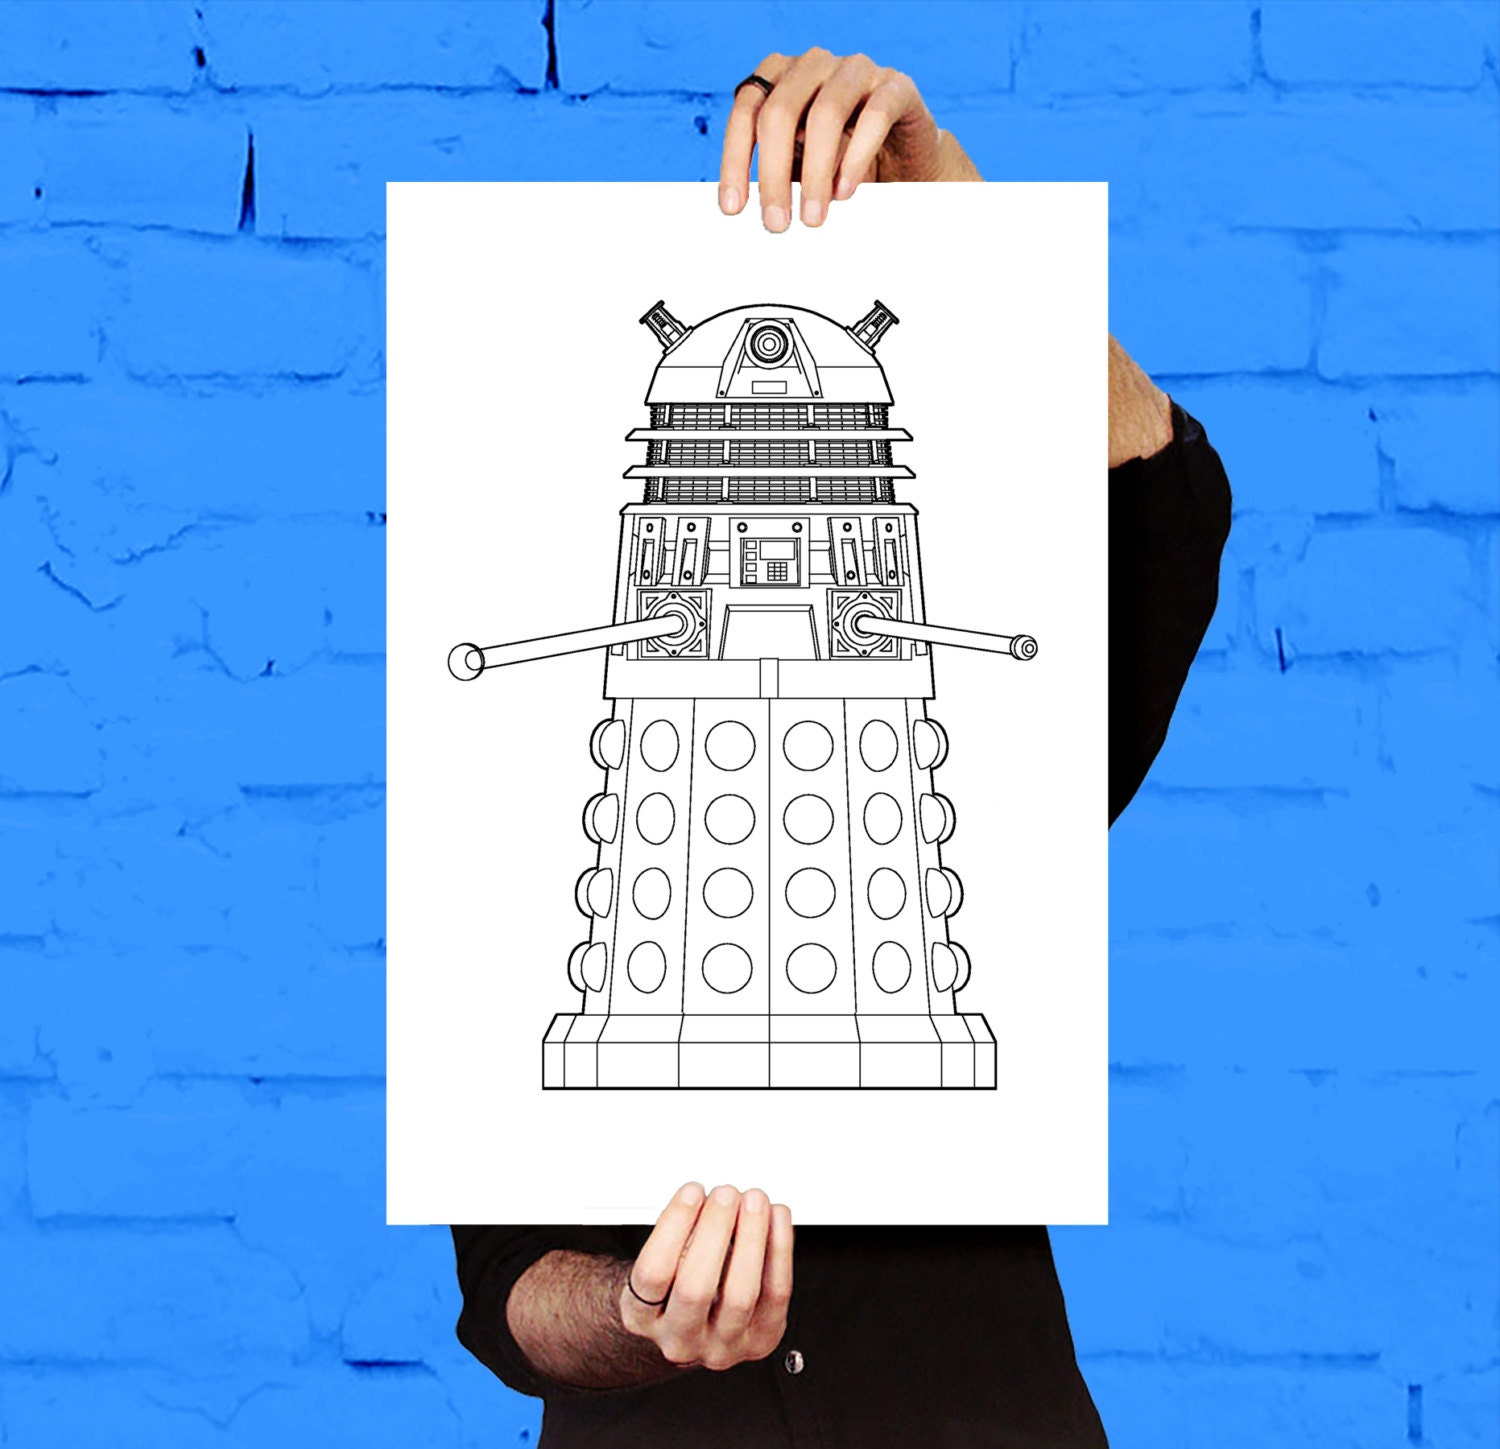 Doctor who dalek patent dr who dalek poster dalek blueprint doctor who dalek patent dr who dalek poster dalek blueprint dalek print dalek art dalek decor doctor who wall art malvernweather Images